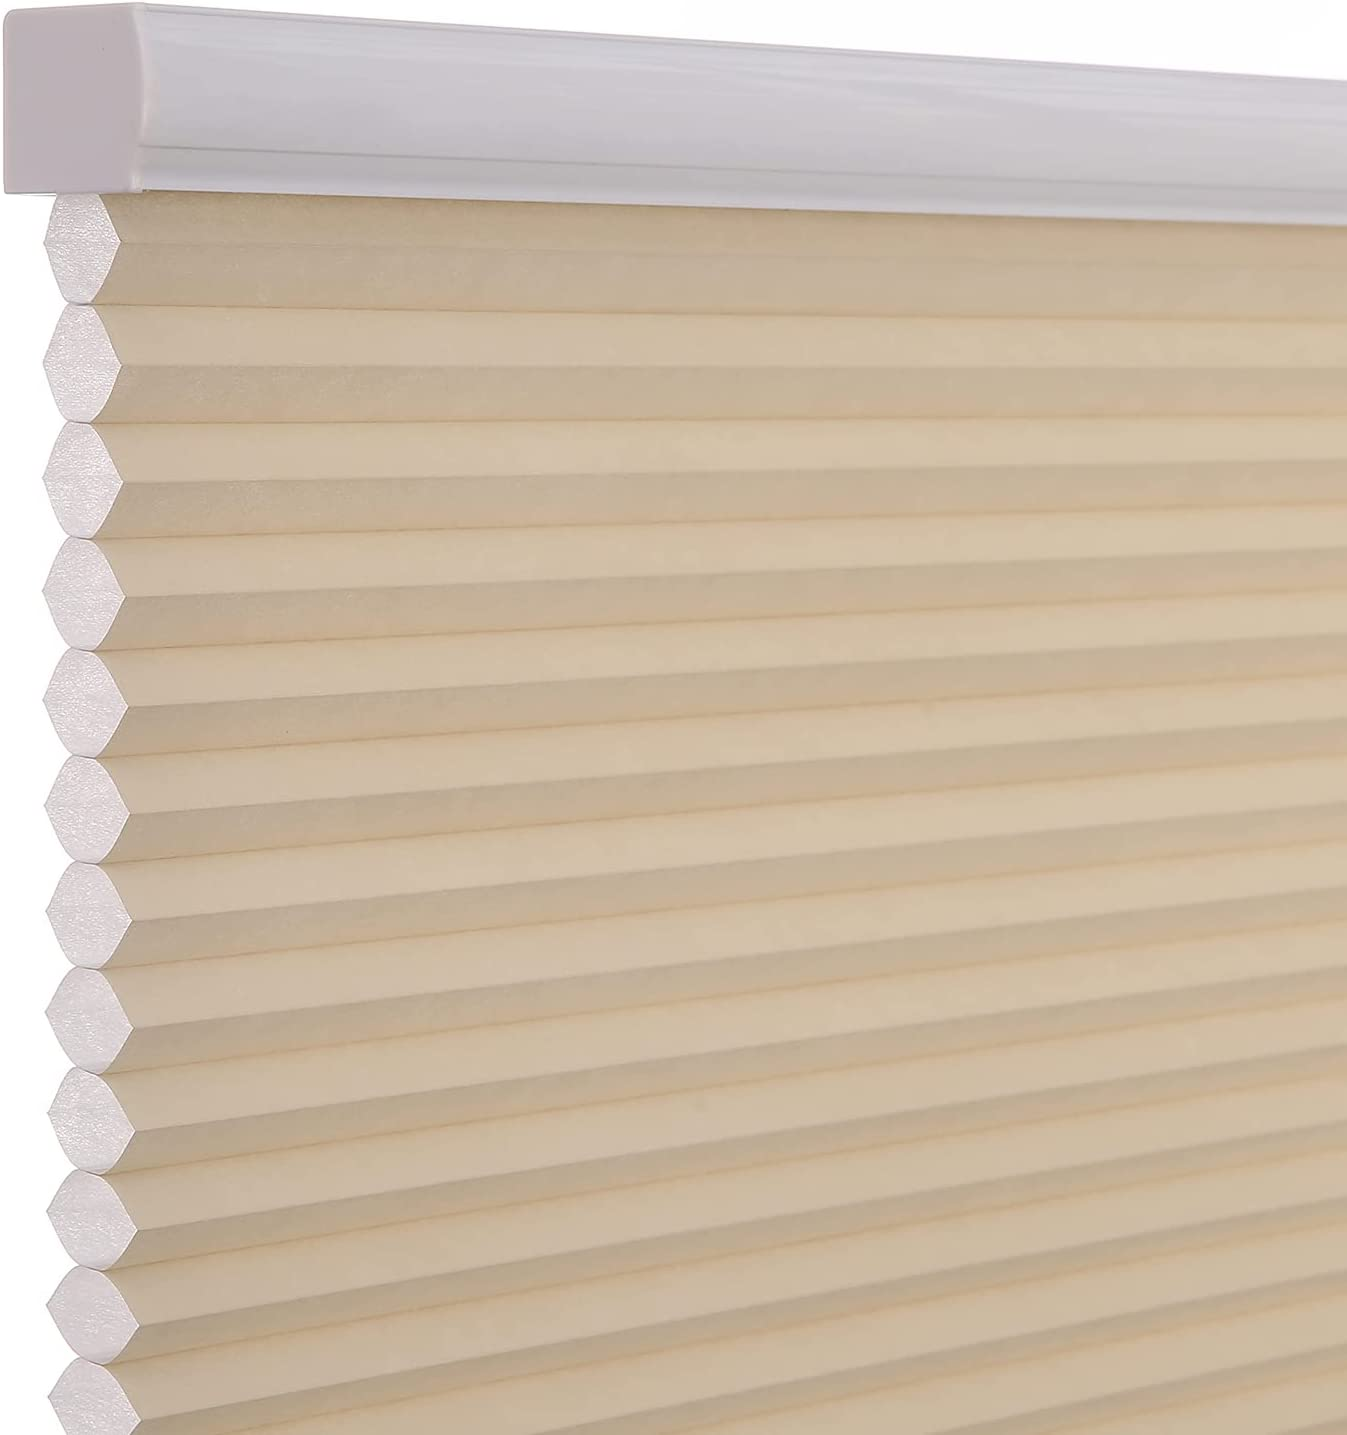 Changshade Cordless & Light Filtering Cellular Shade, Pleated Honeycomb Shade with The Diameter of 1.5 inch honeycombs, Light Blocking Window Shade and Blind, 20 inches Wide, Beige CEL20BG48D